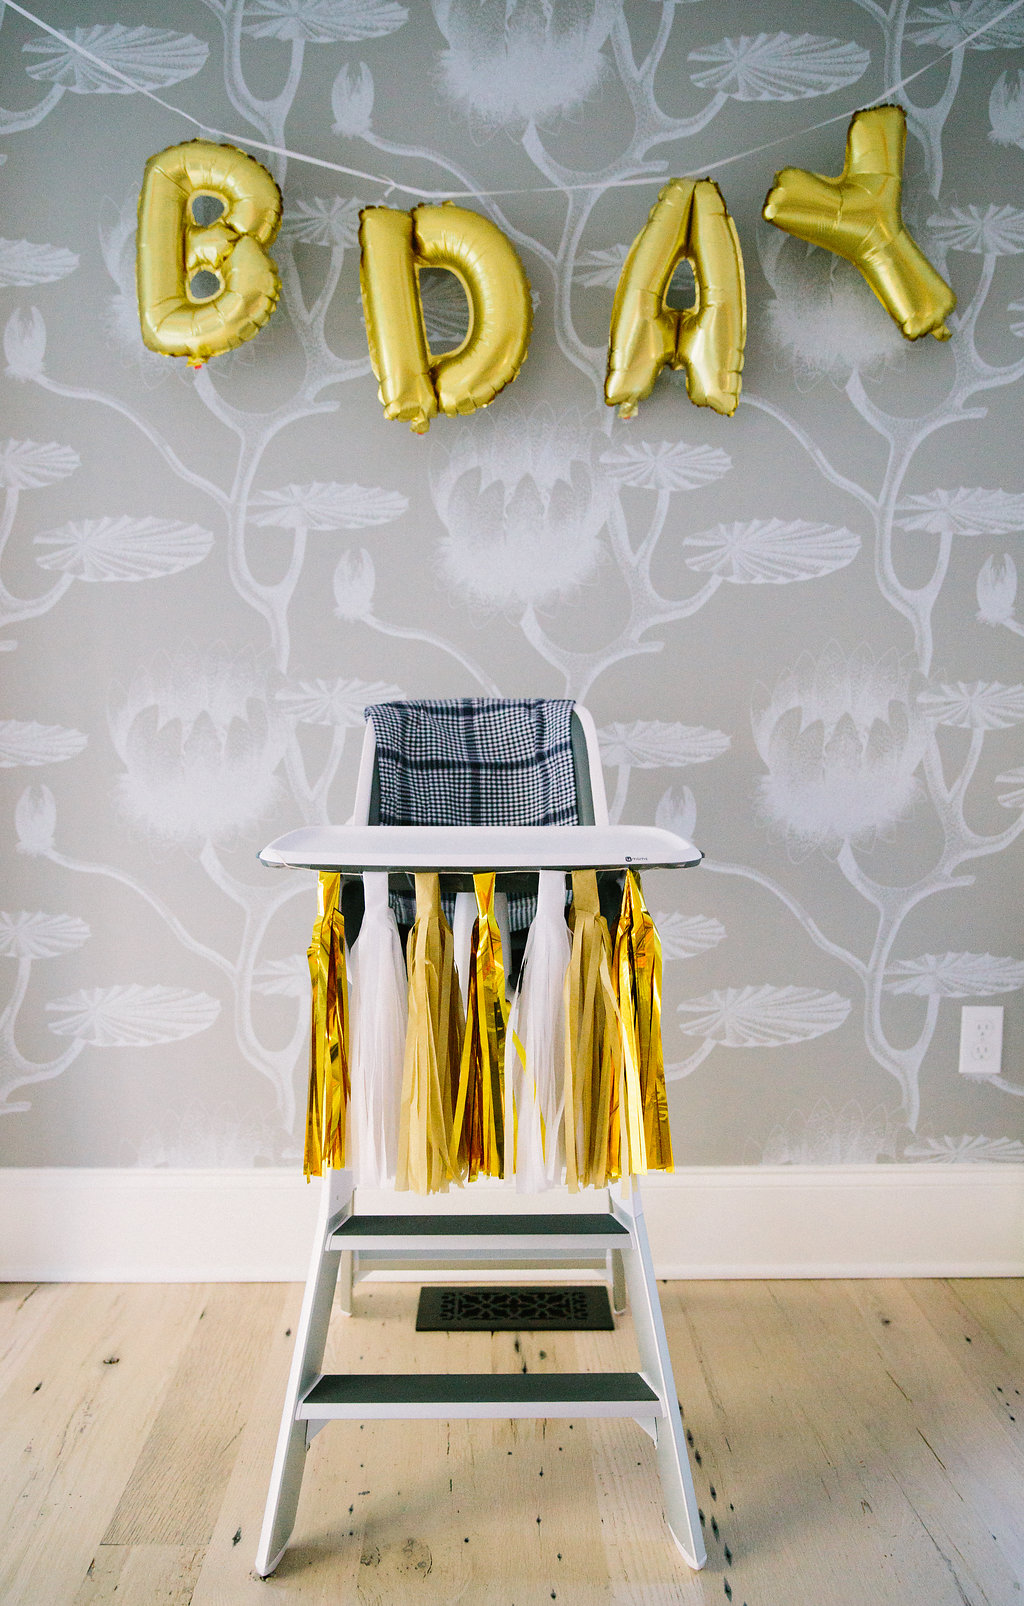 The birthday high chair set up with gold and white tassels at Major Martino's first birthday party in Connecticut